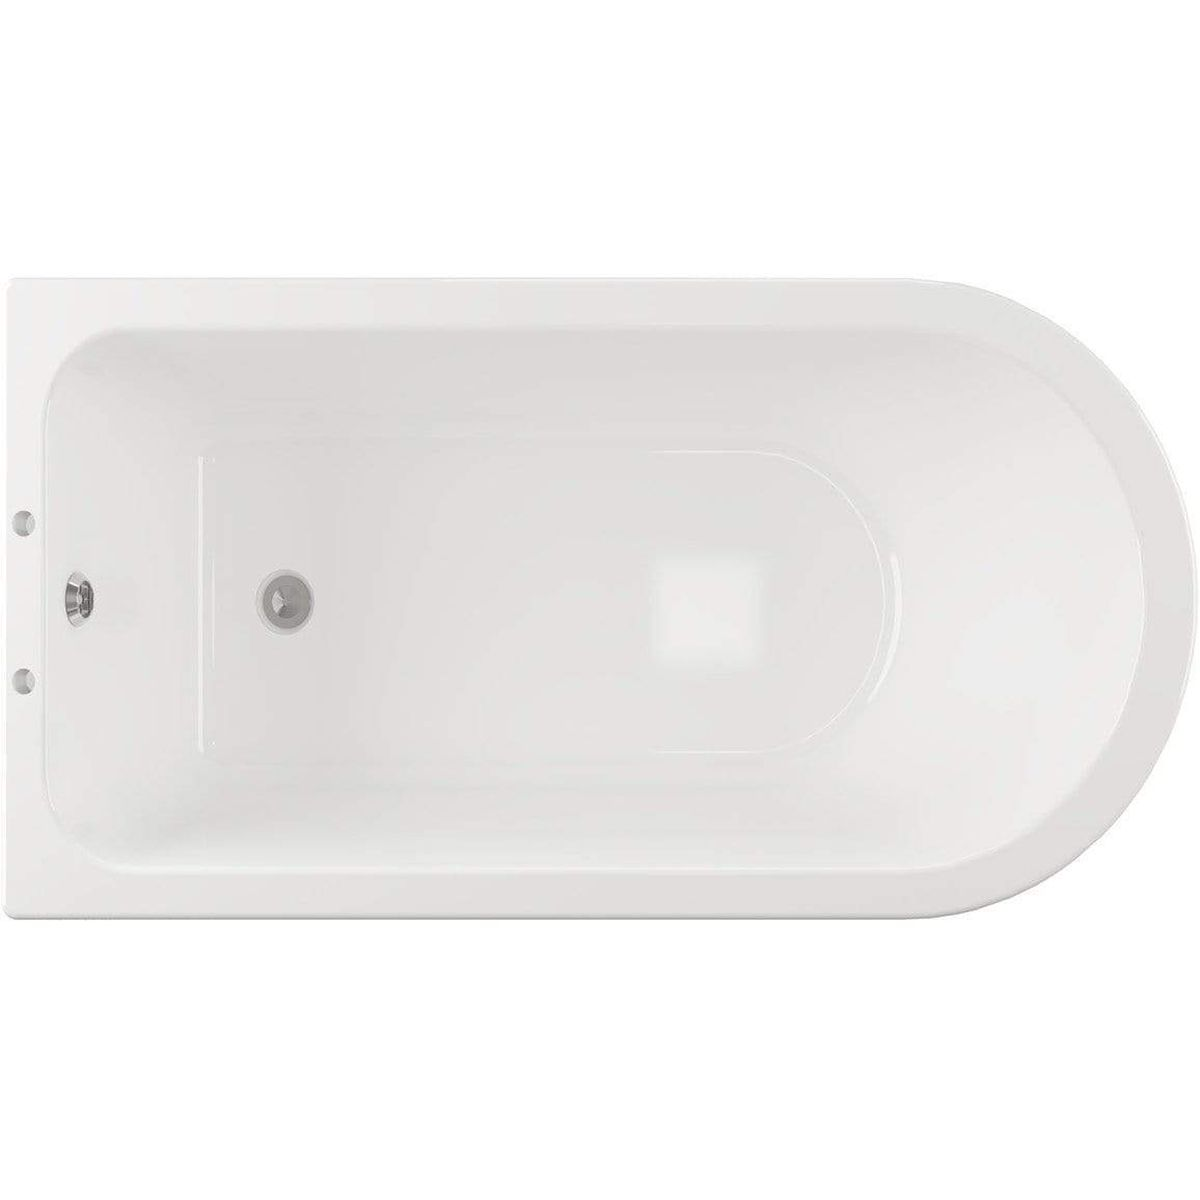 Bathrooms To Love Traditional Corner Freestanding Bath with Feet 1700mm x 750mm 2